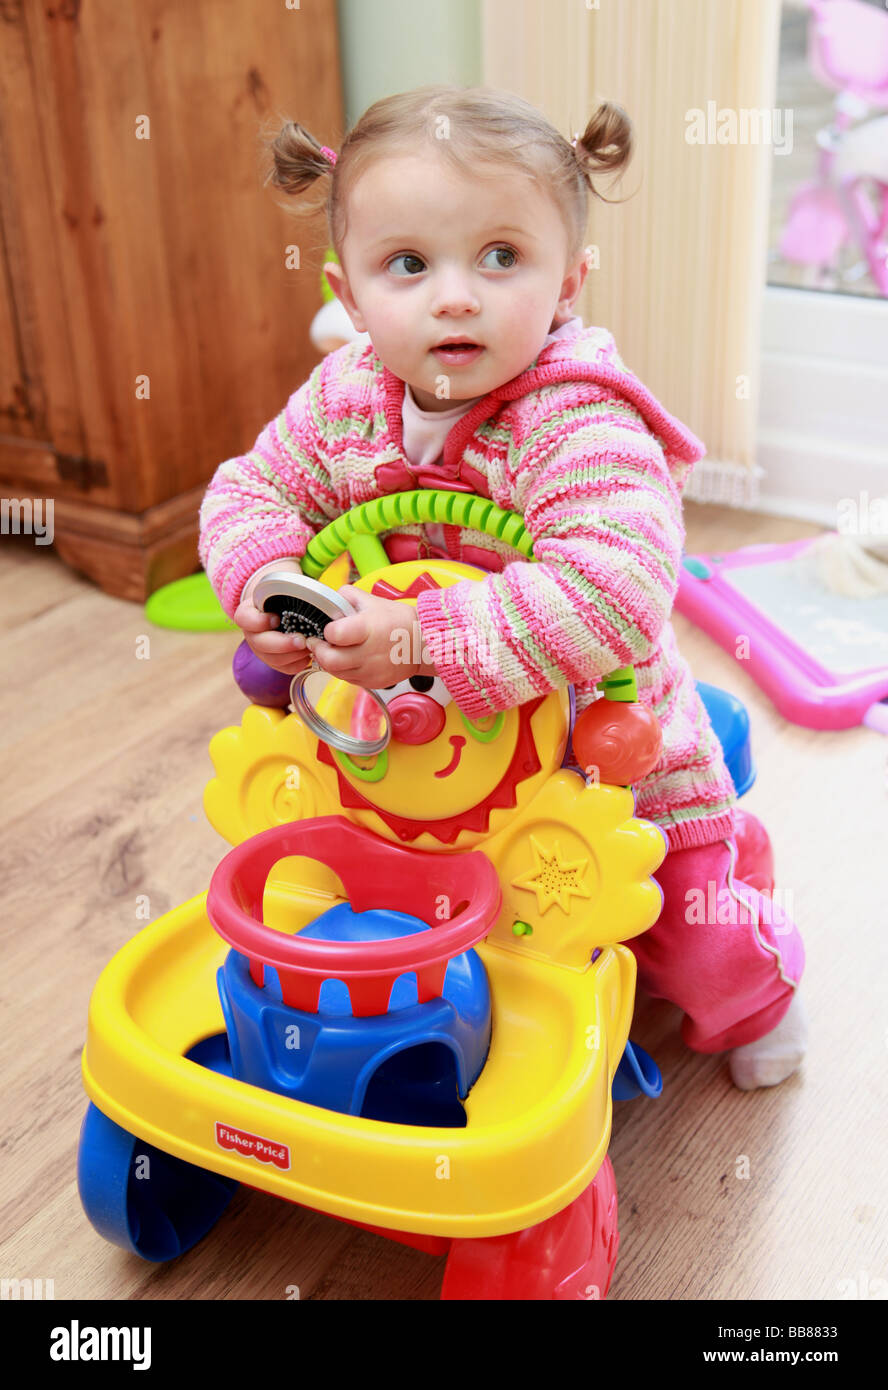 Baby Toys 2 Years Old : Year old girl playing with toys stock photo royalty